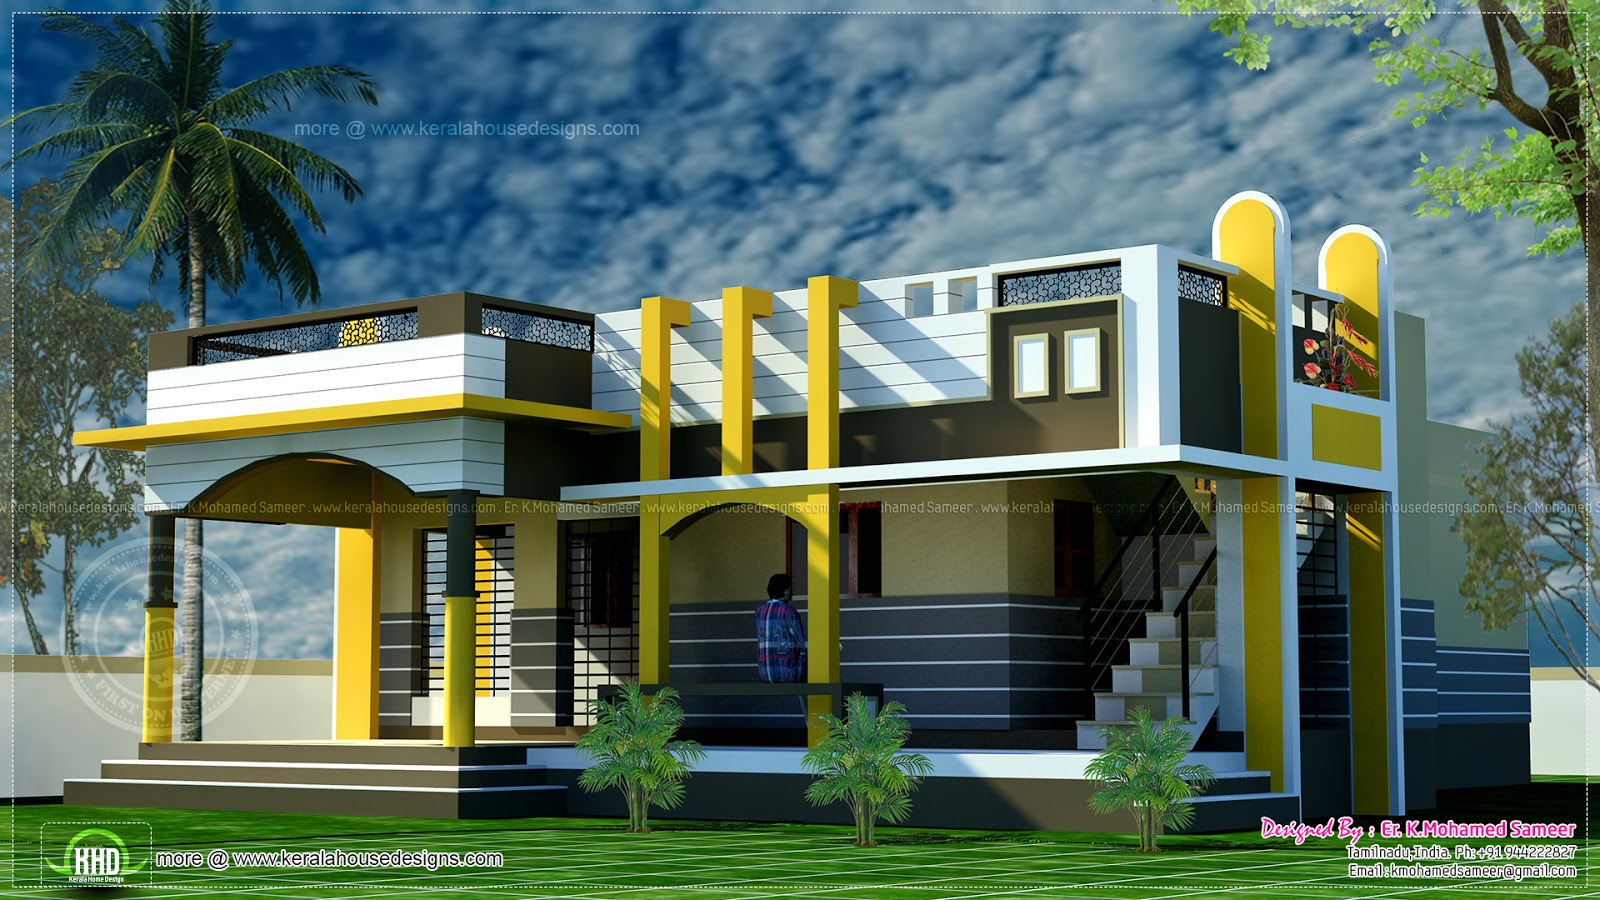 Small house design contemporary style kerala home design for Indian small house design 2 bedroom